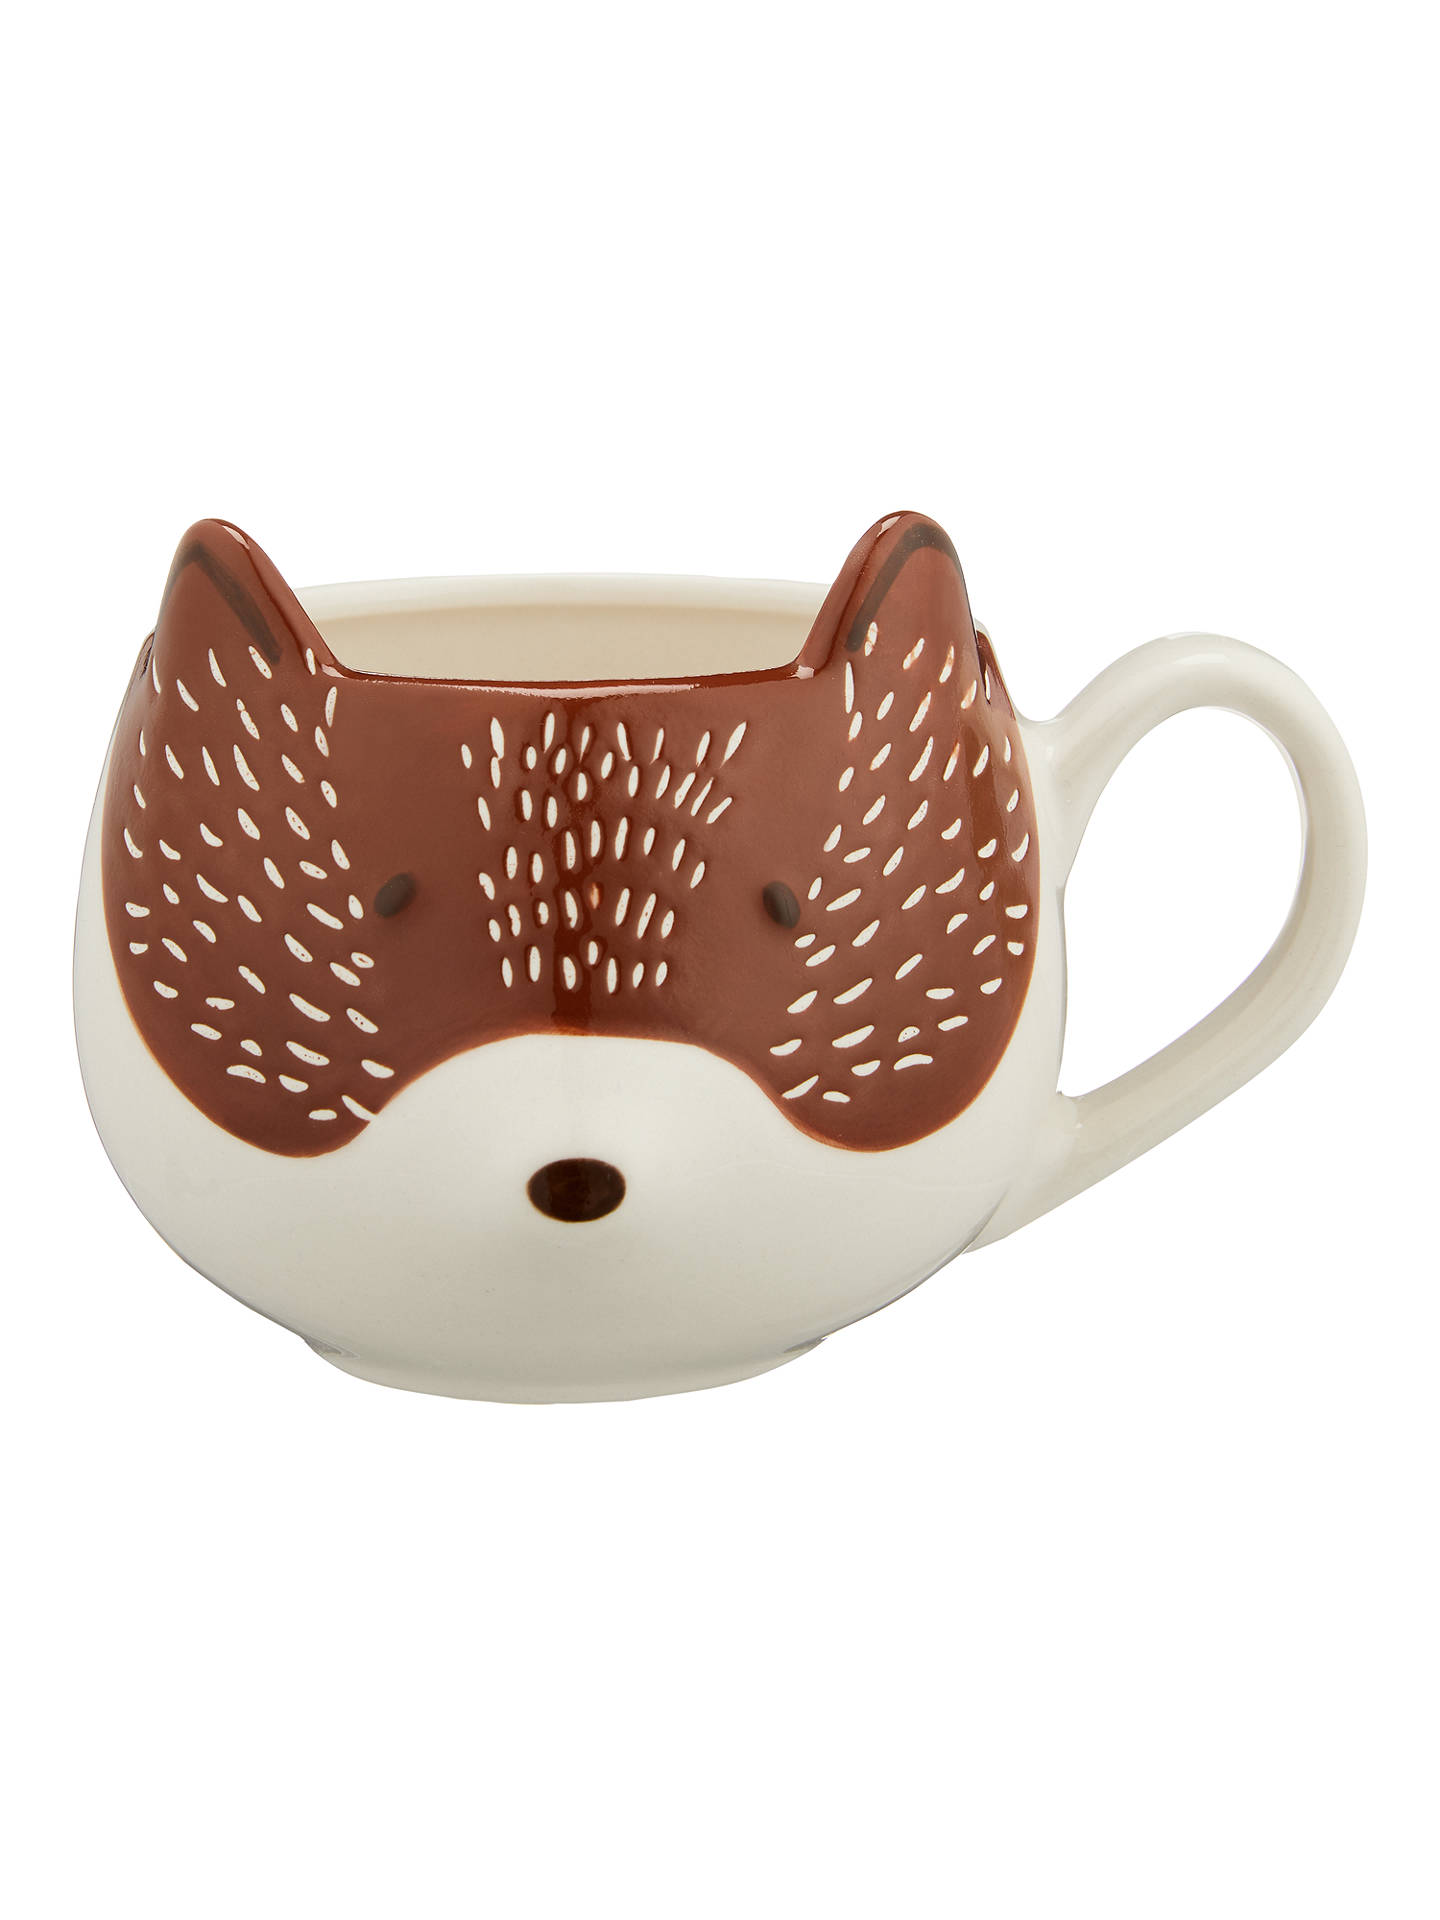 BuyJohn Lewis & Partners Fox Mug, 350ml, Brown Online at johnlewis.com